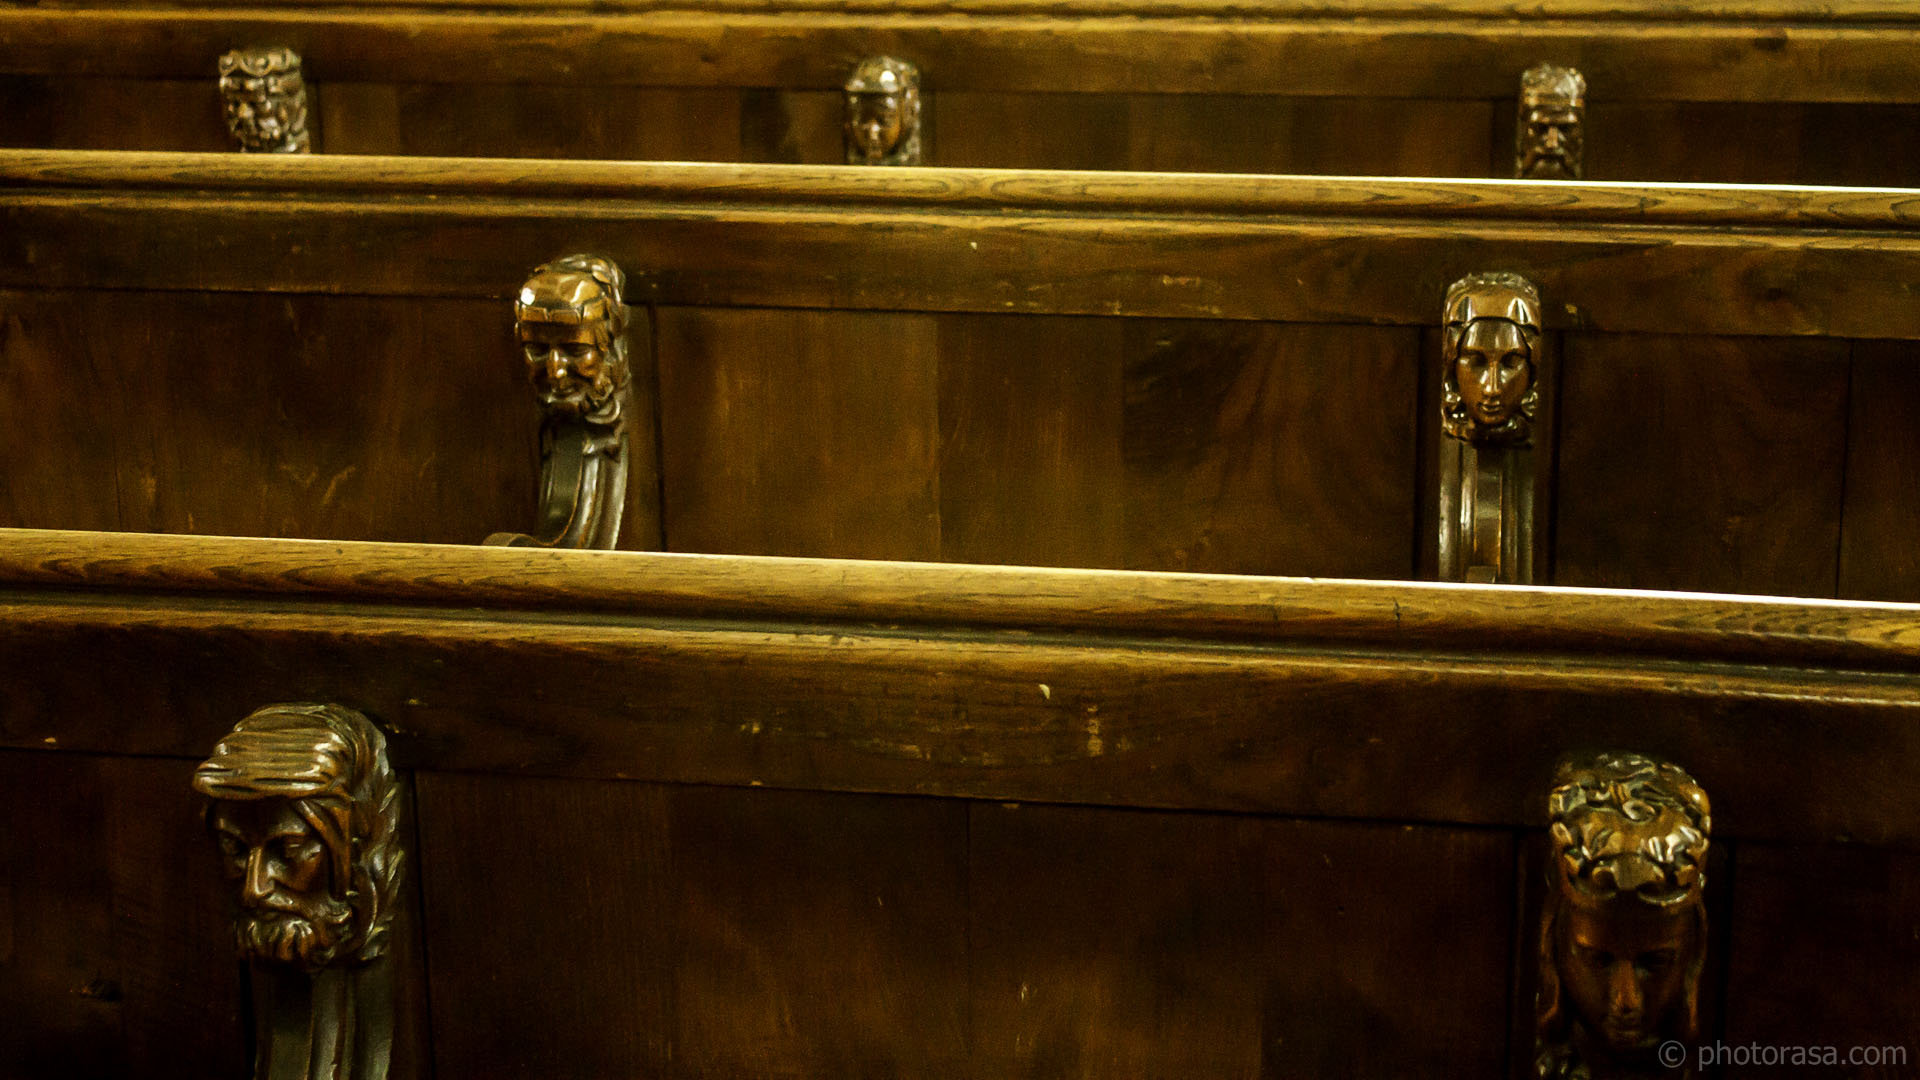 https://photorasa.com/inside-all-saints-church-in-maidstone/choir-stalls-with-carved-heads/